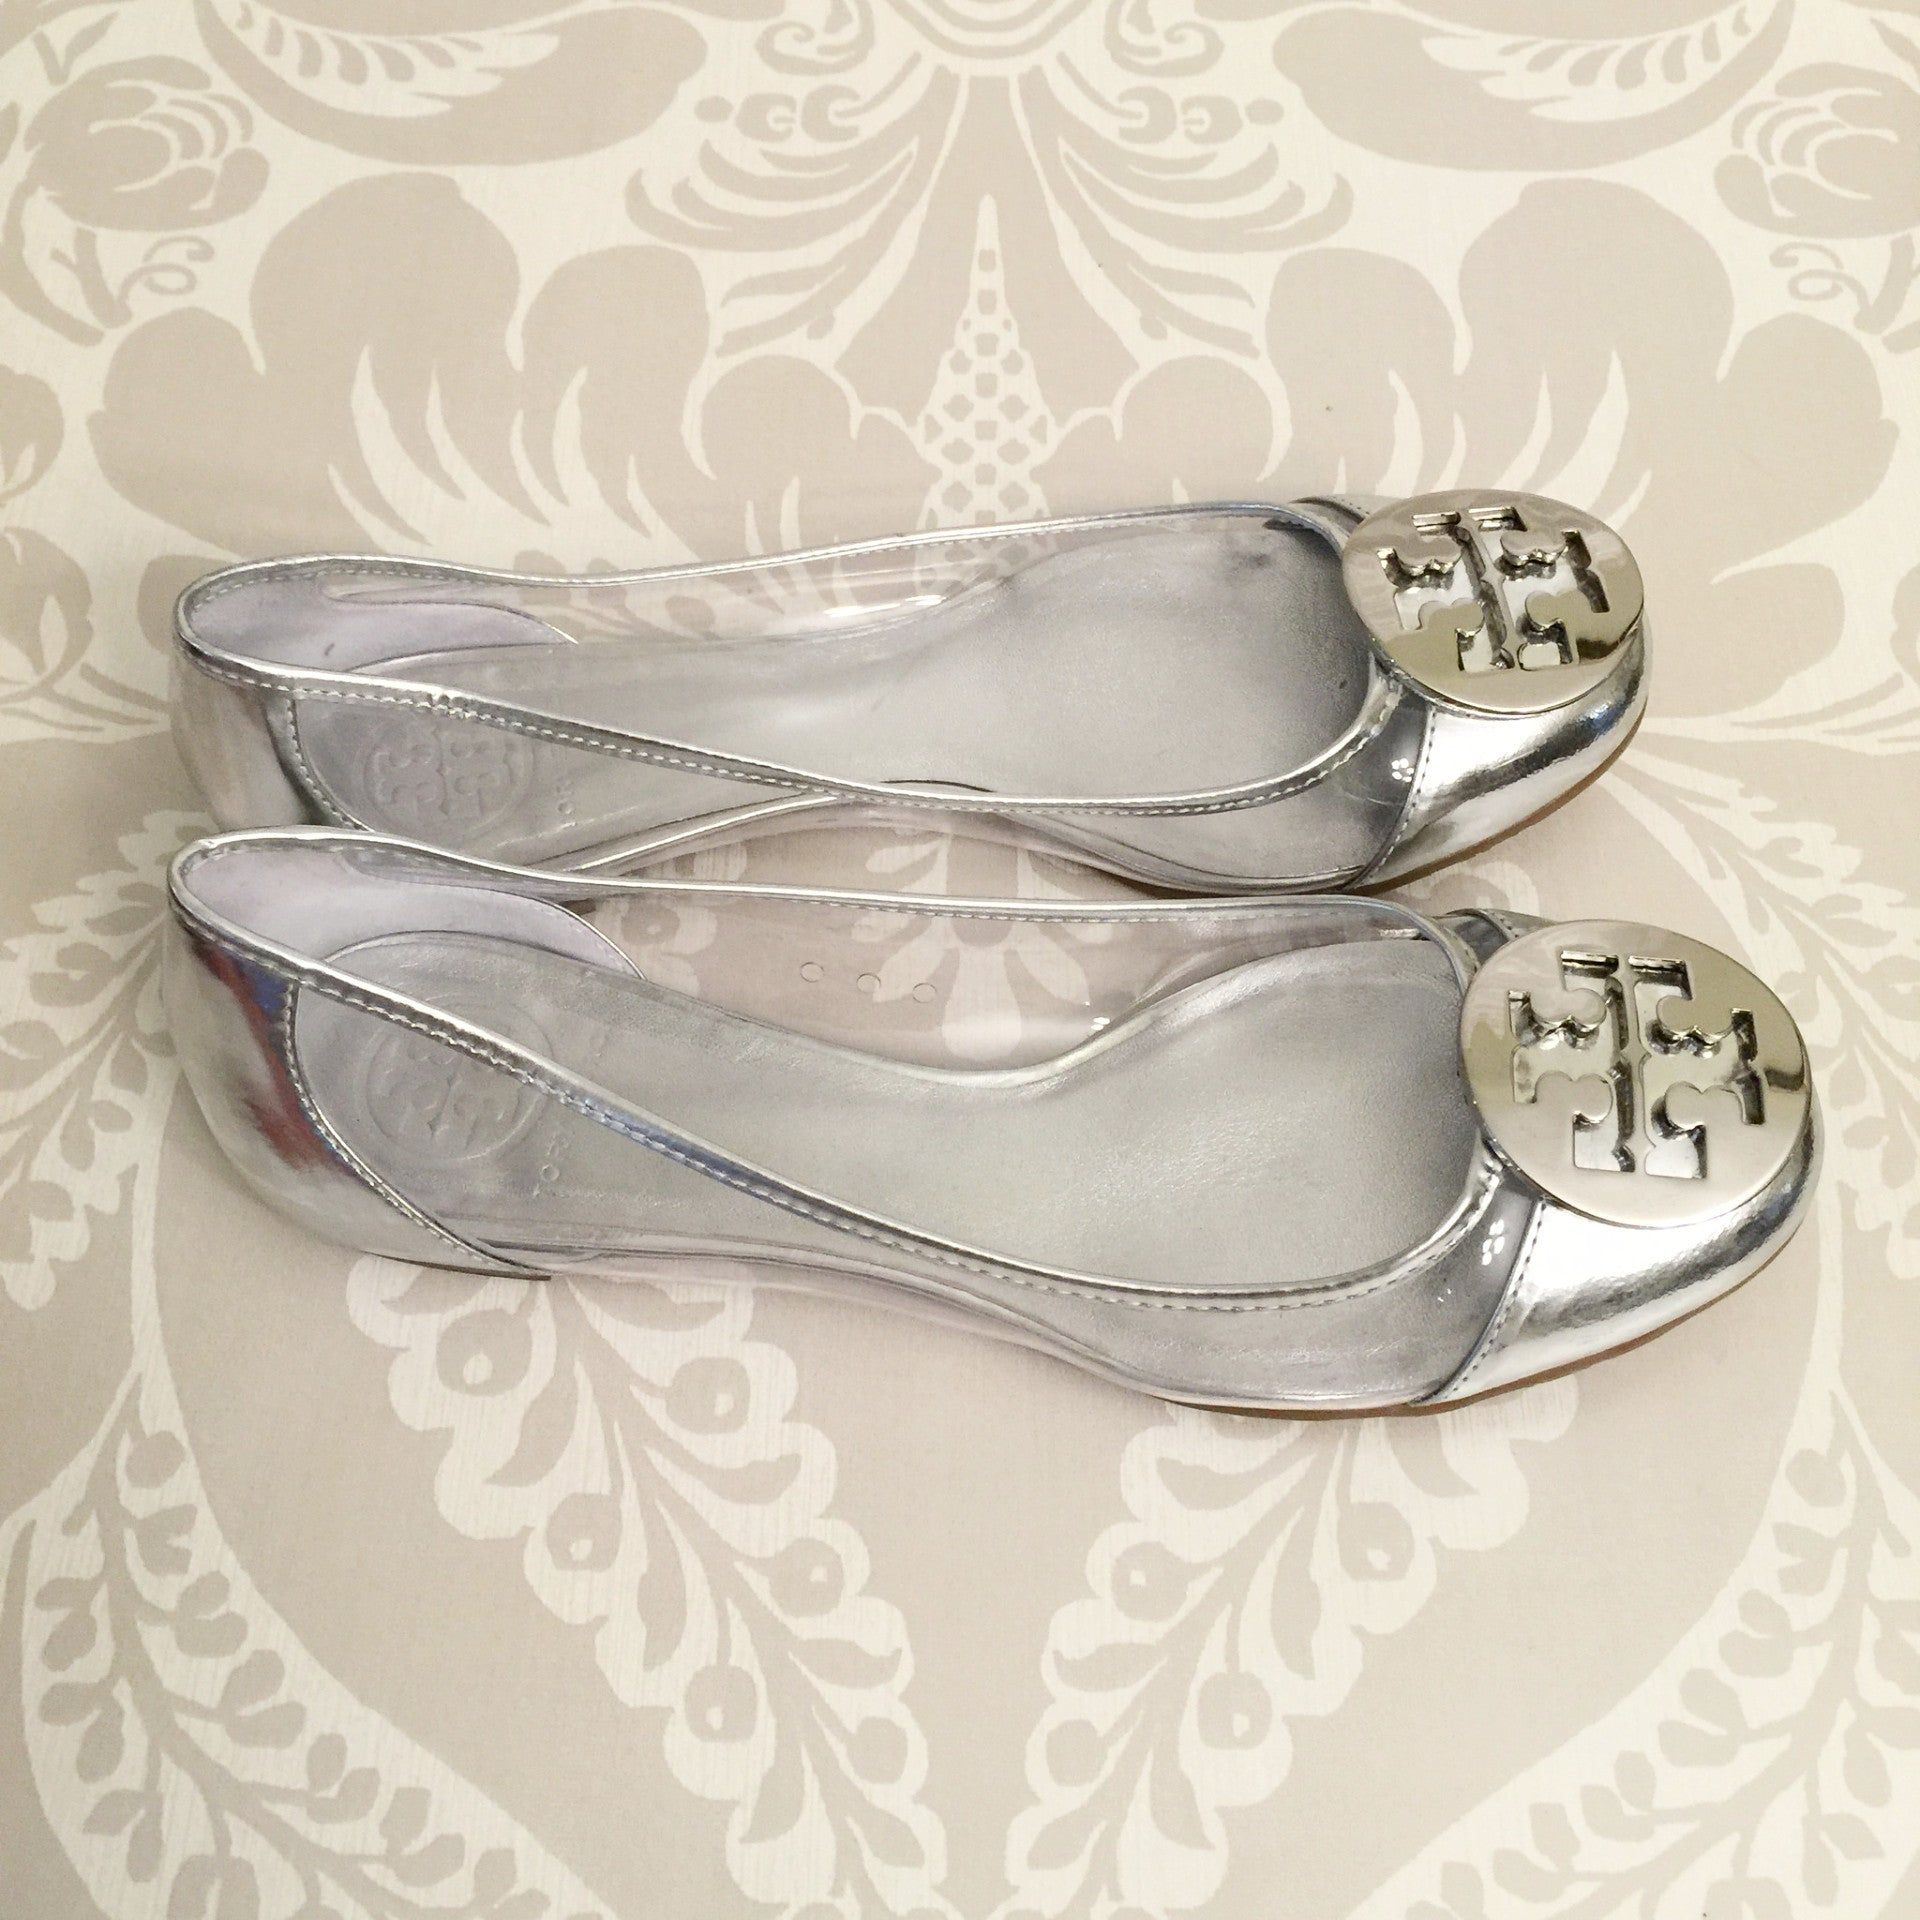 Authentic TORY BURCH Audry Ballet flats size 6.5